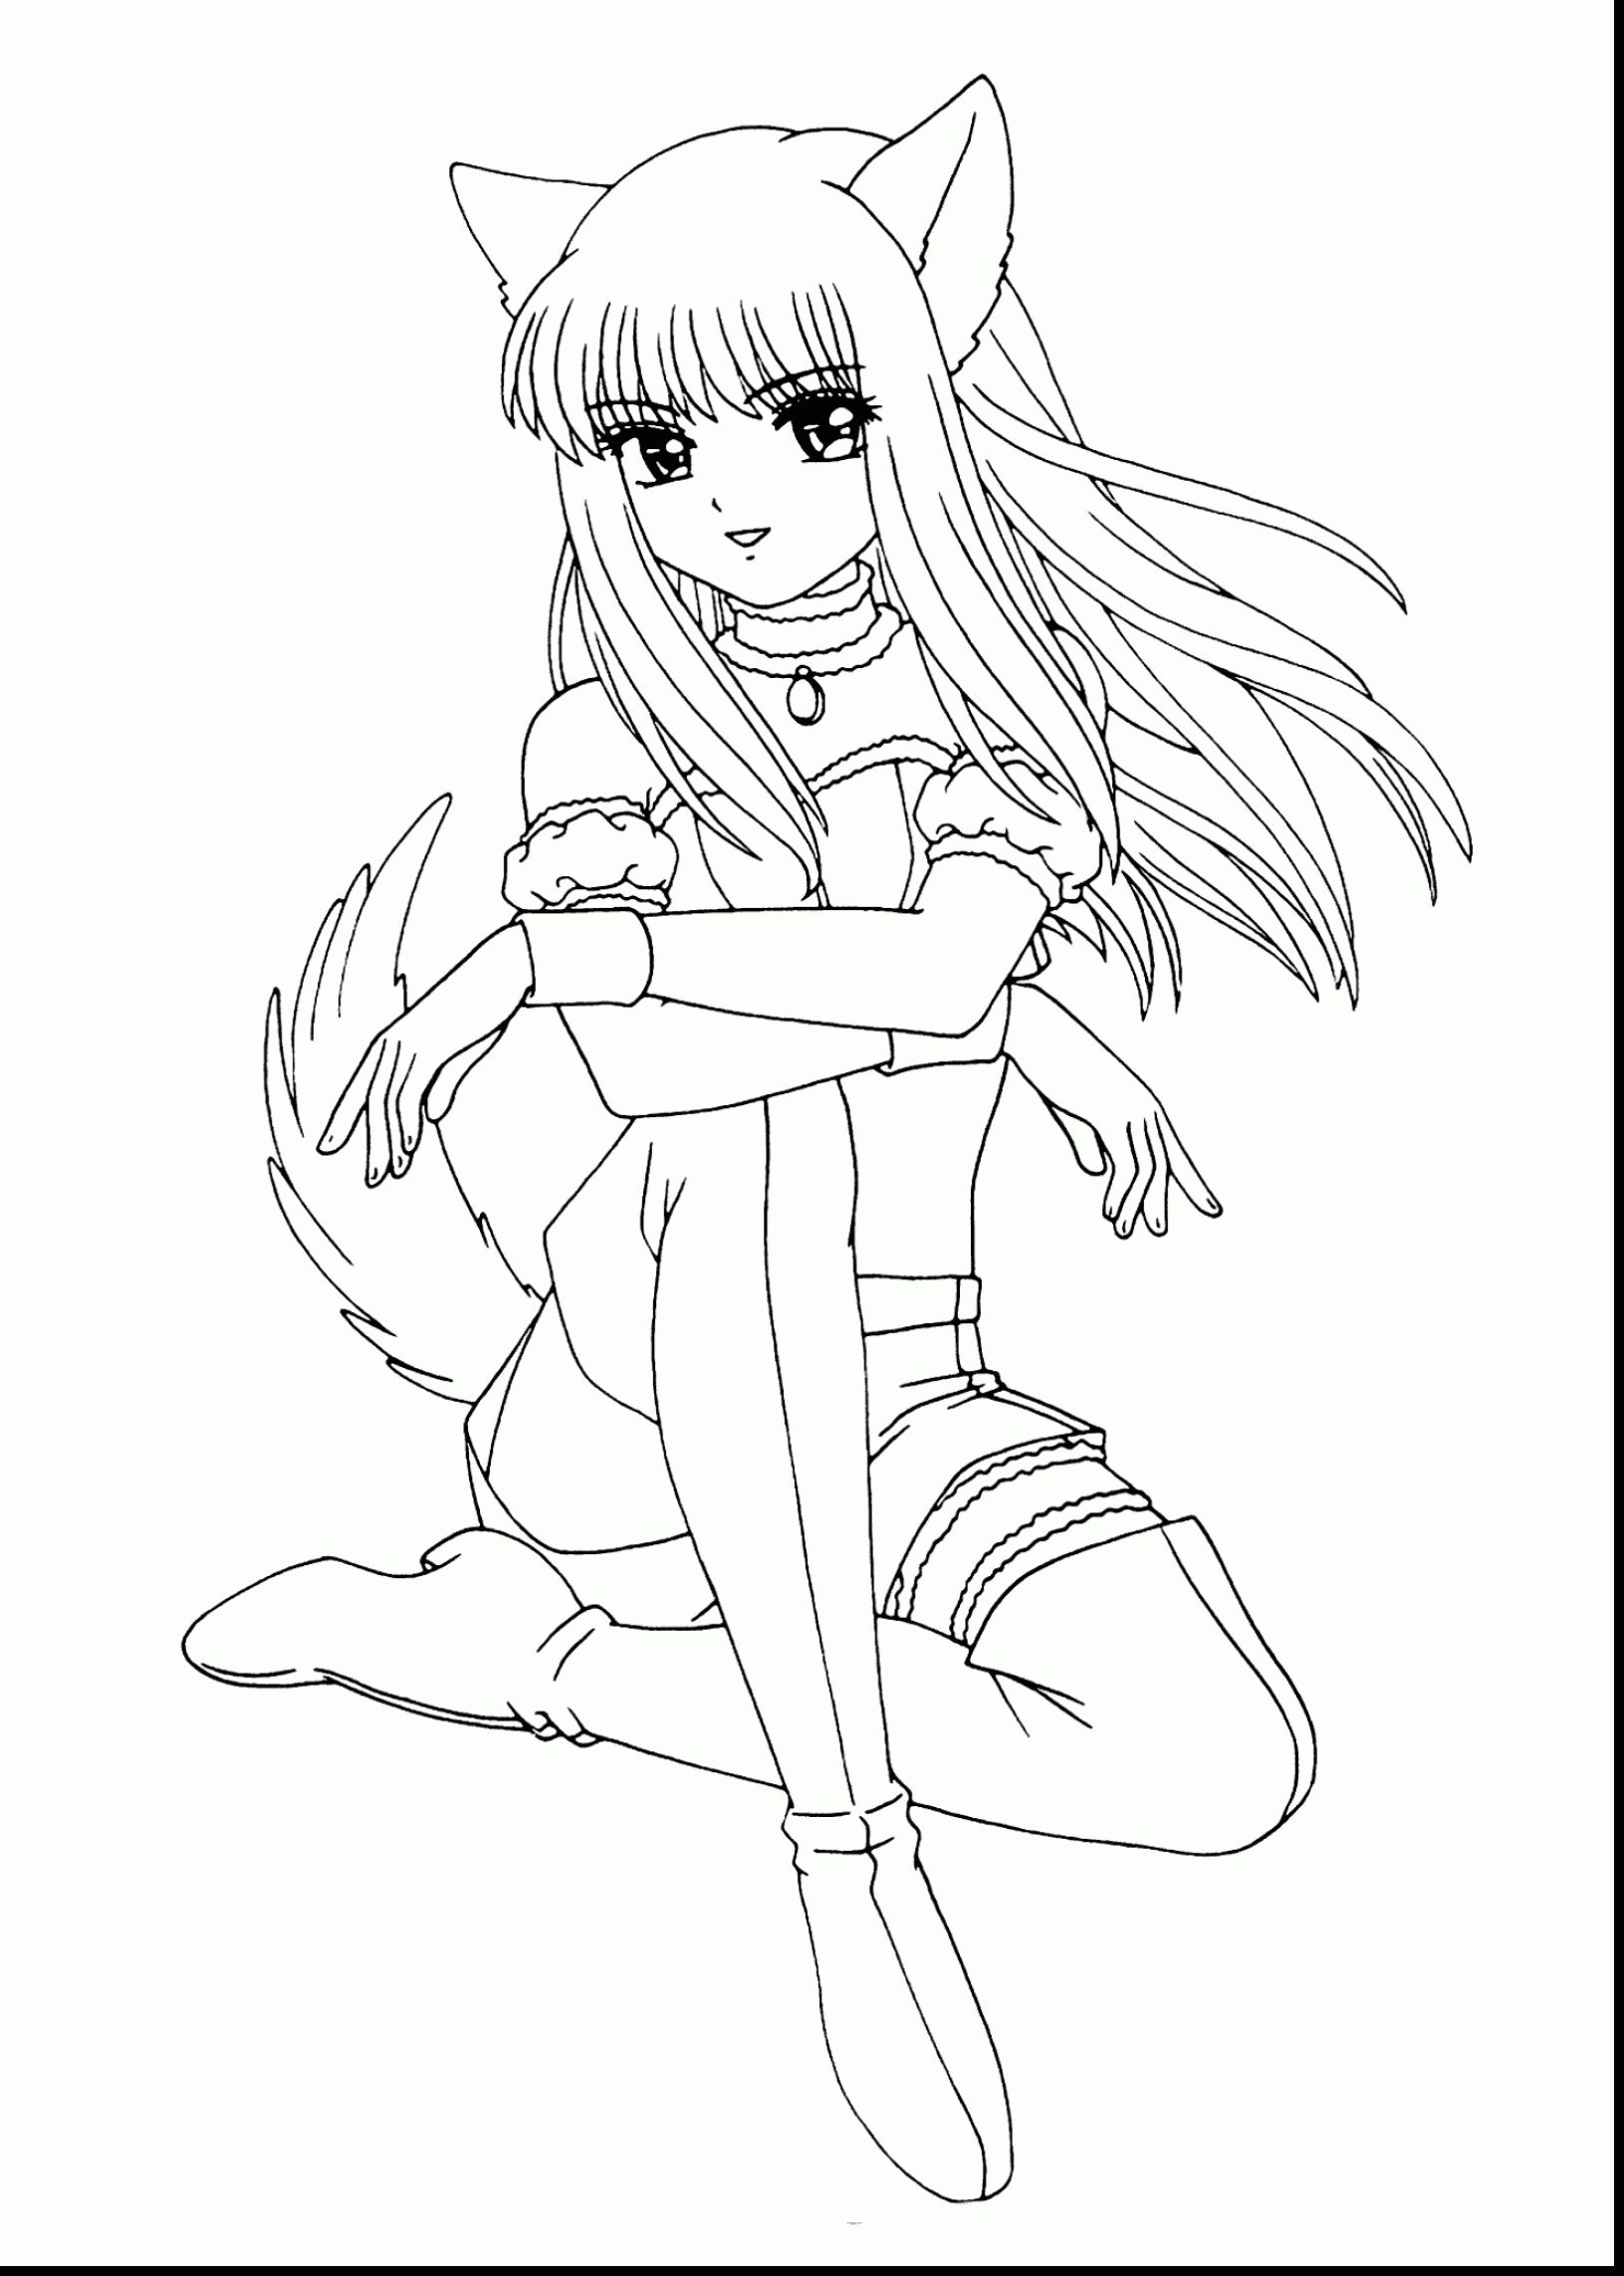 Cute Anime Cat Coloring Pages Download Anime Wolf Girl Princess Coloring Pages Disney Princess Coloring Pages